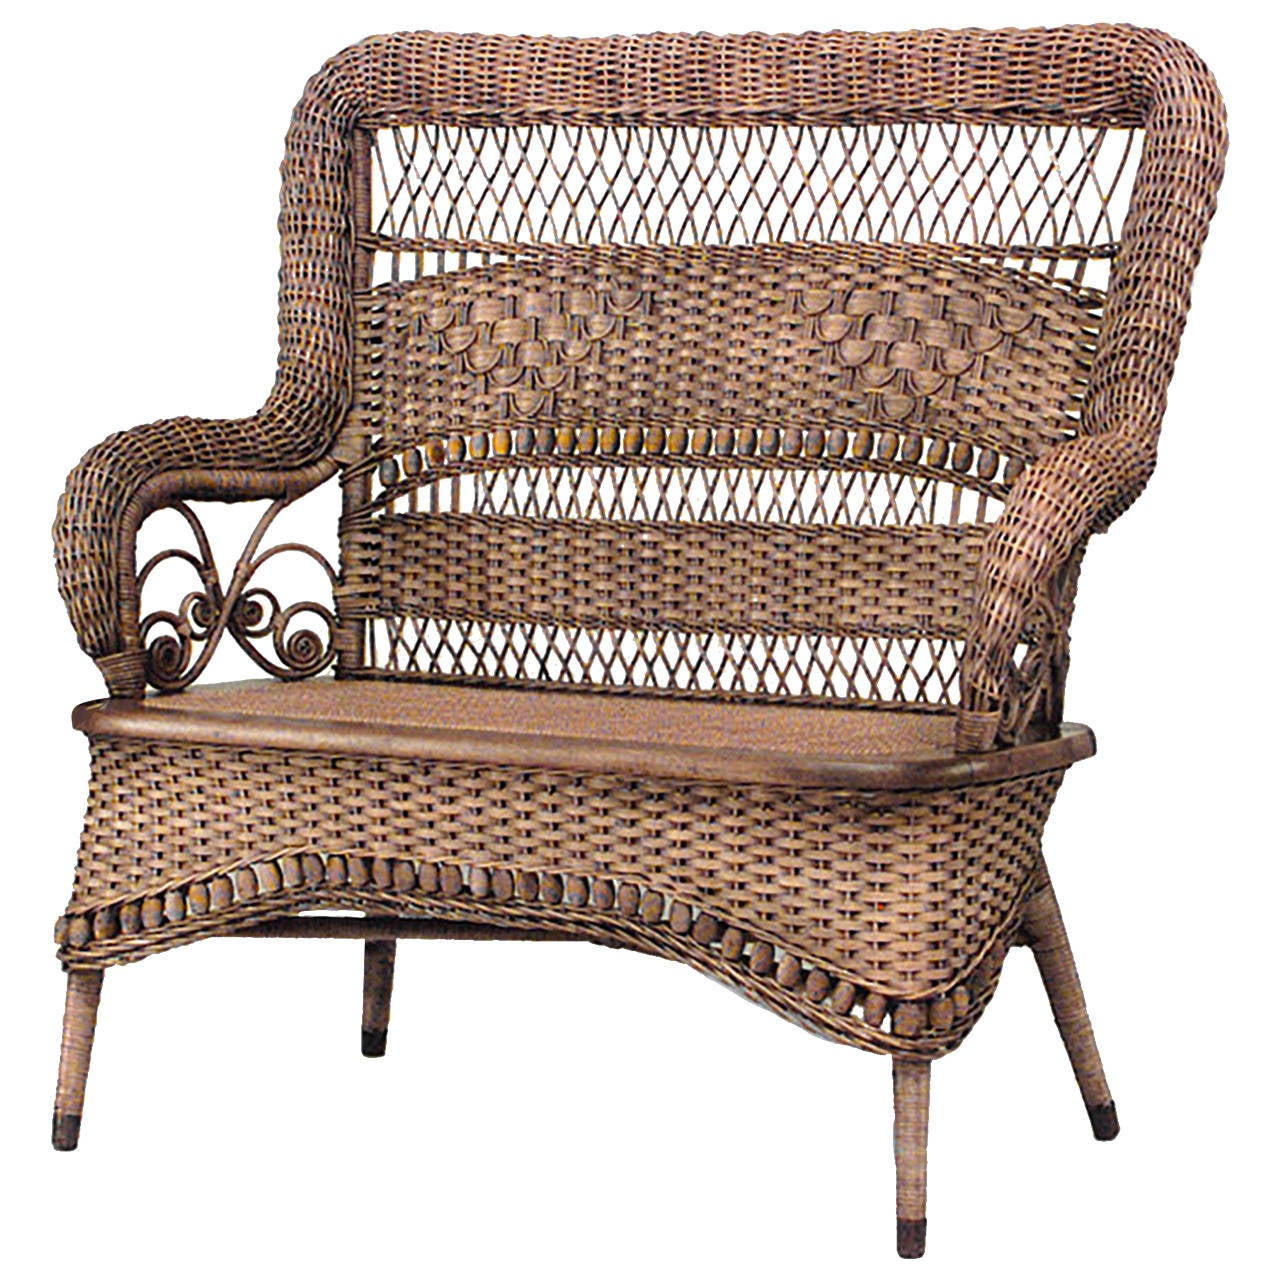 american natural wicker loveseat by larkin u0026 co